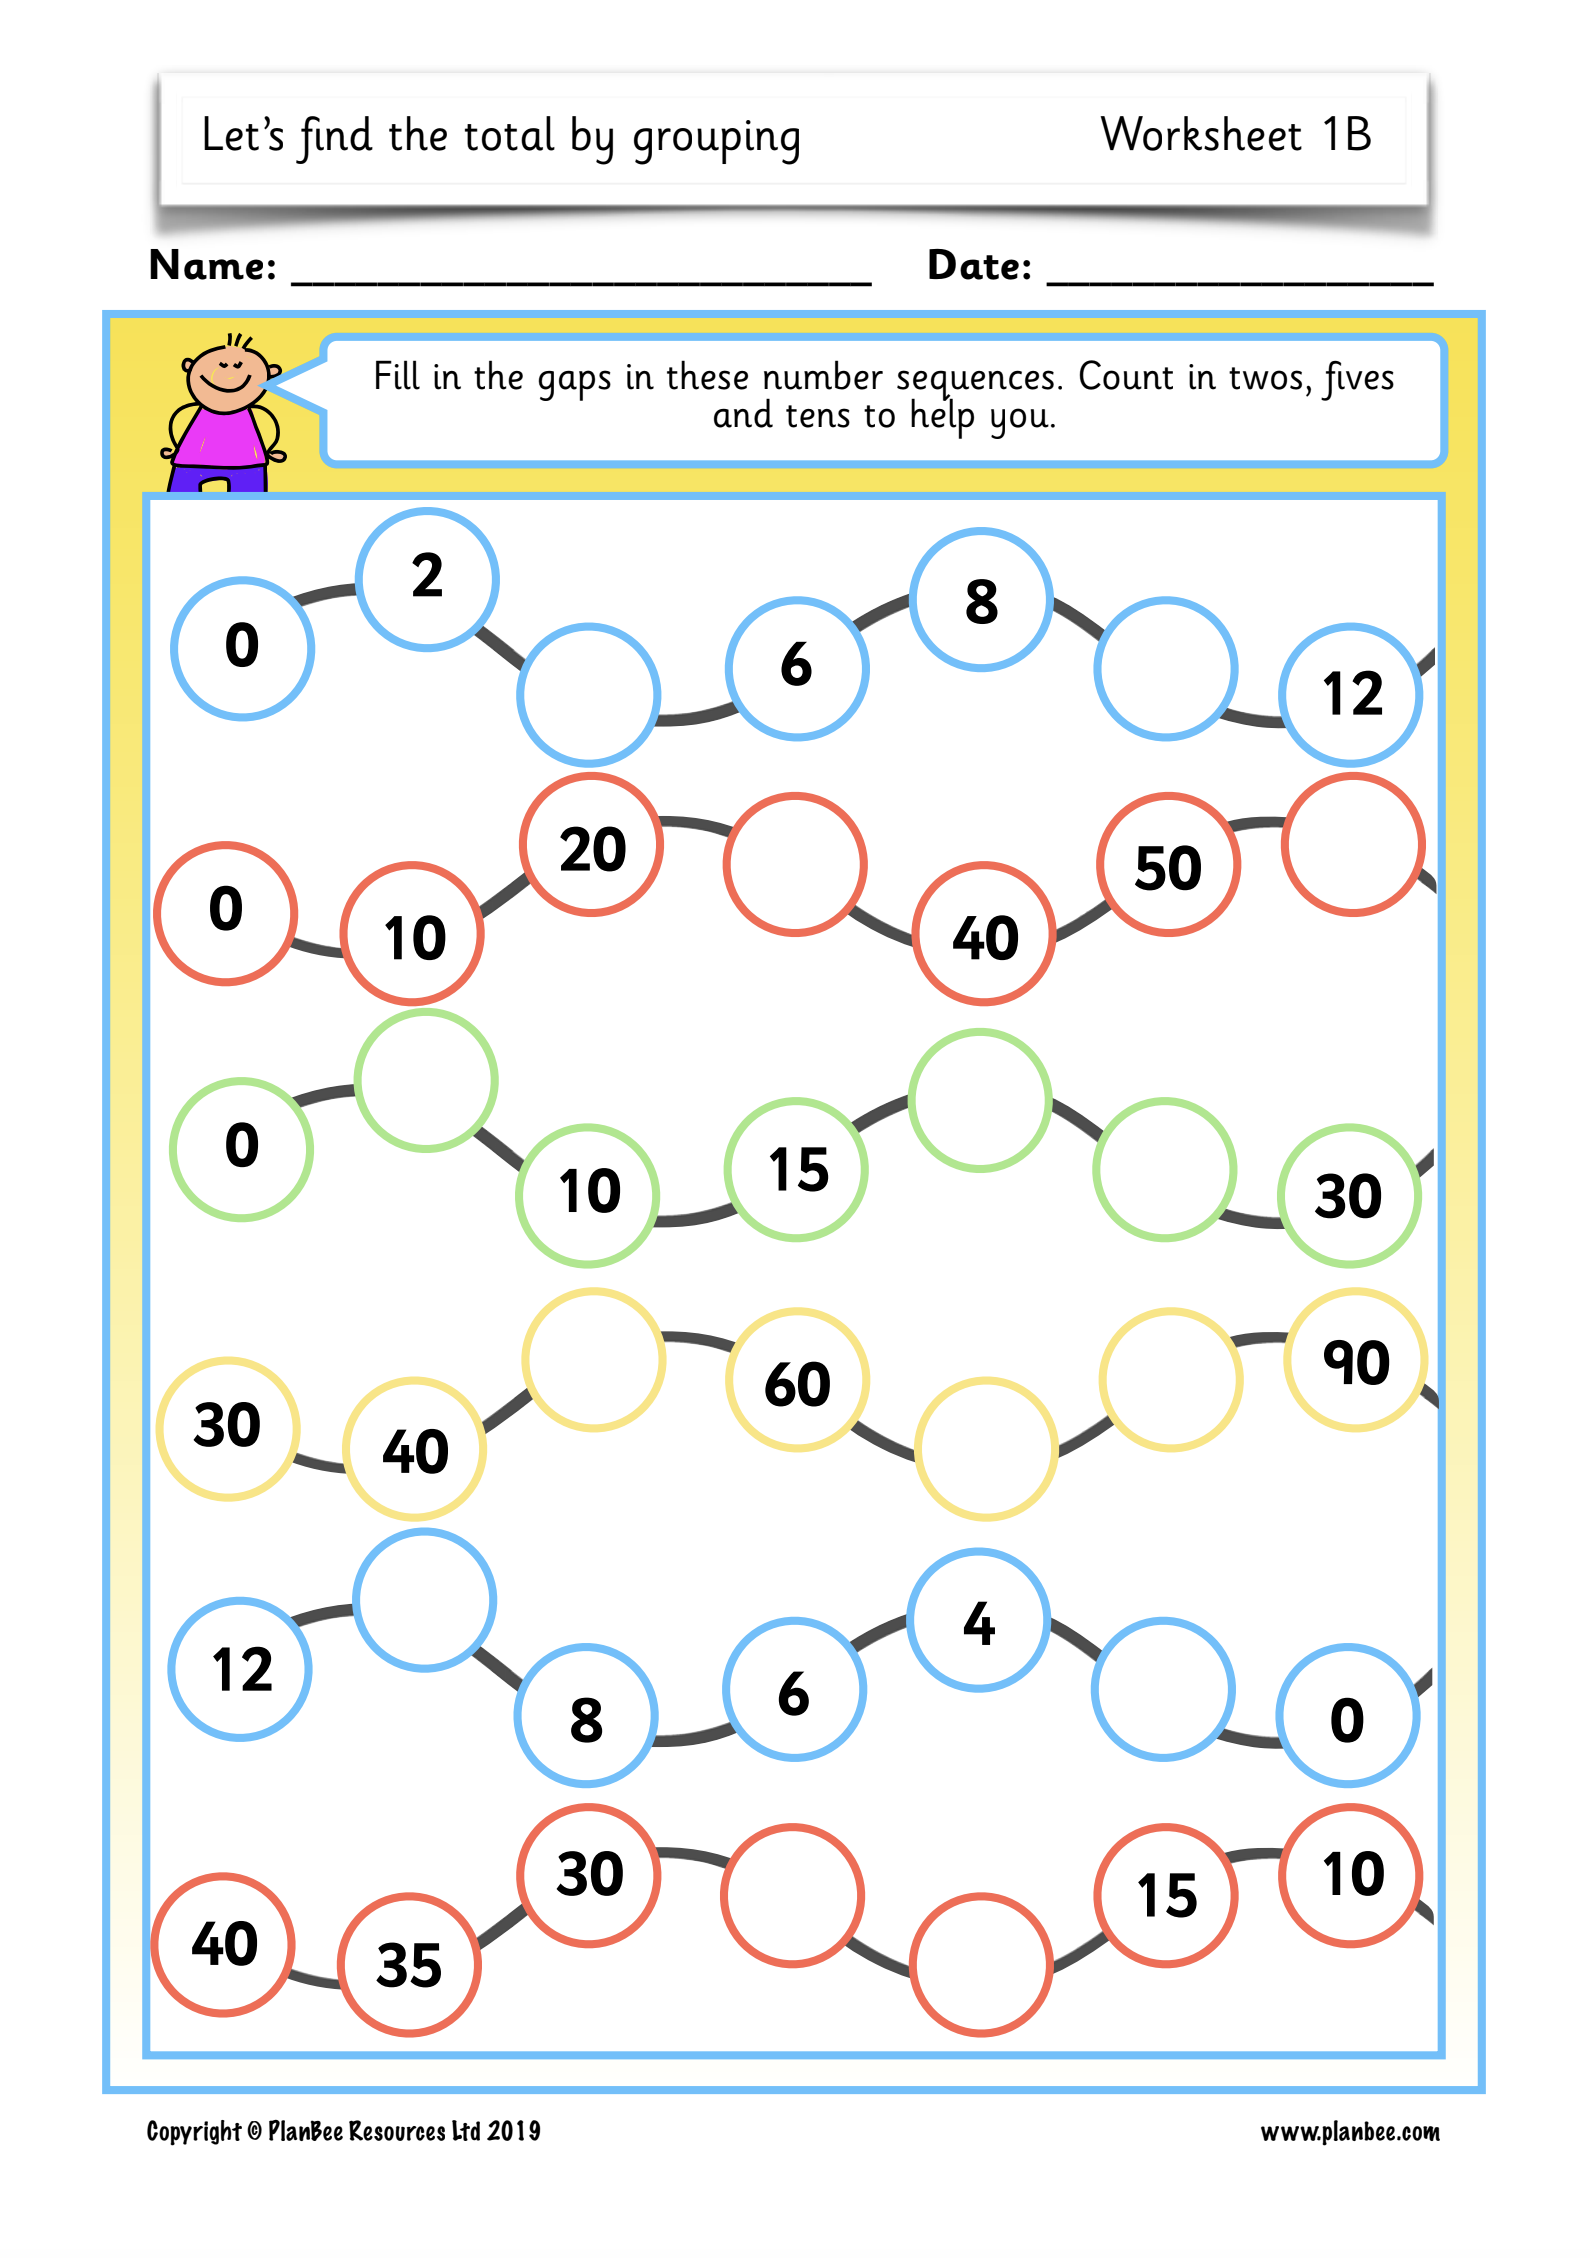 Counting In 2s 5s And 10s Worksheet Educational Math Activities Kids Math Worksheets Primary Maths Activities